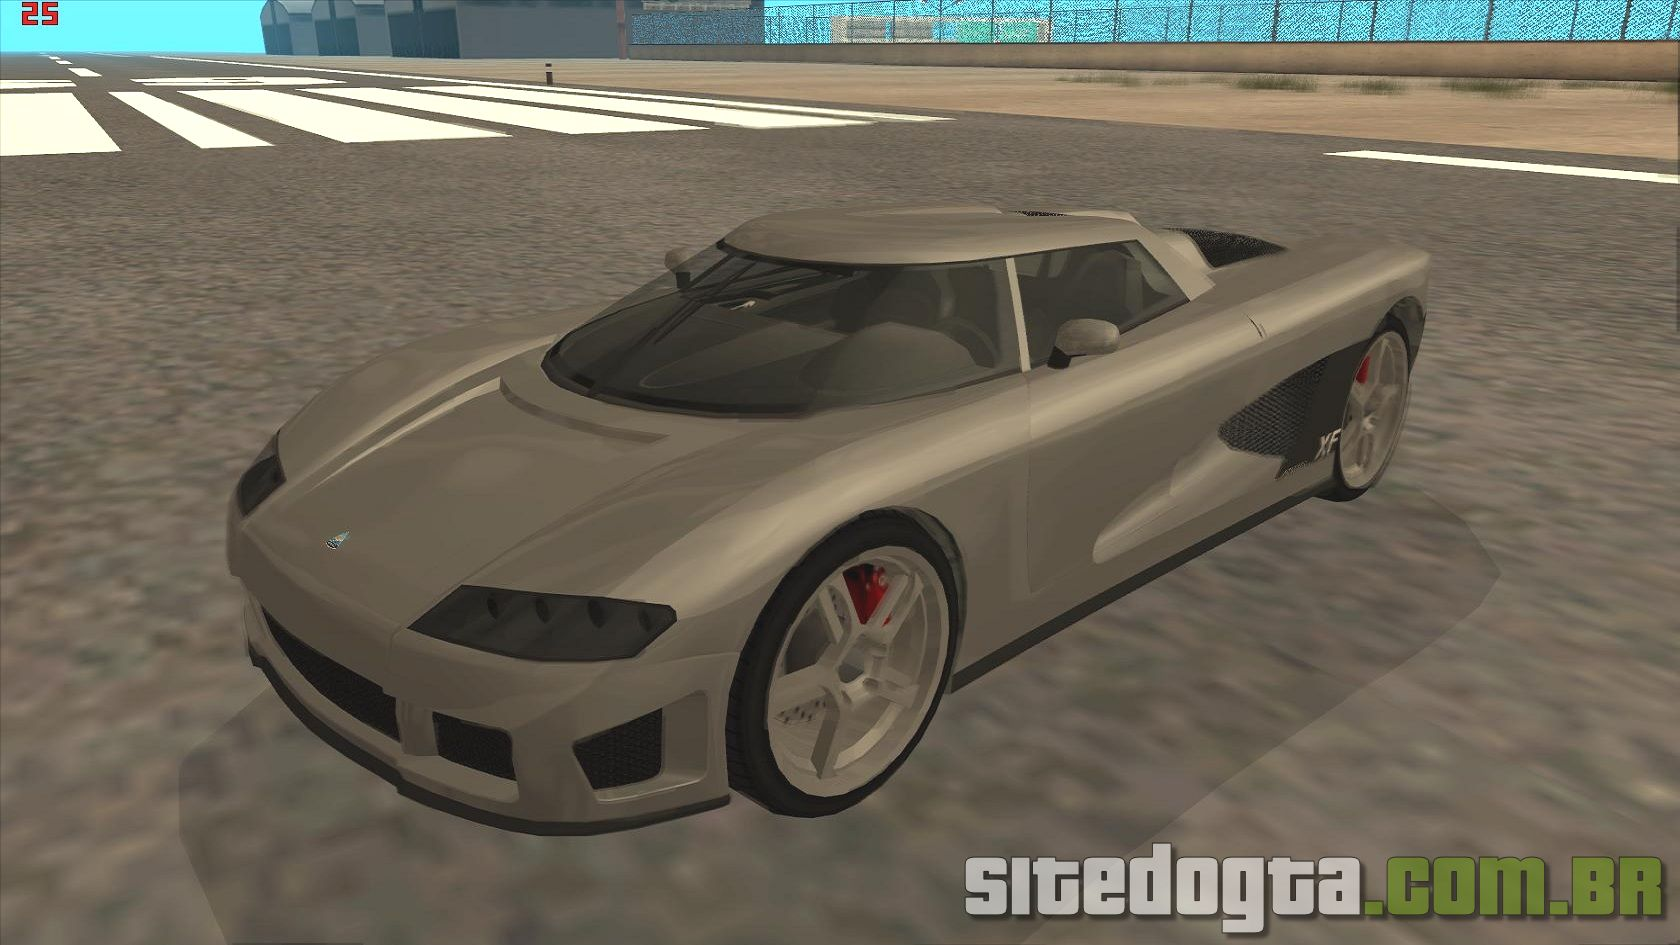 Index of /imagens/veiculos/carros/gta5/Overflod Entity XF do